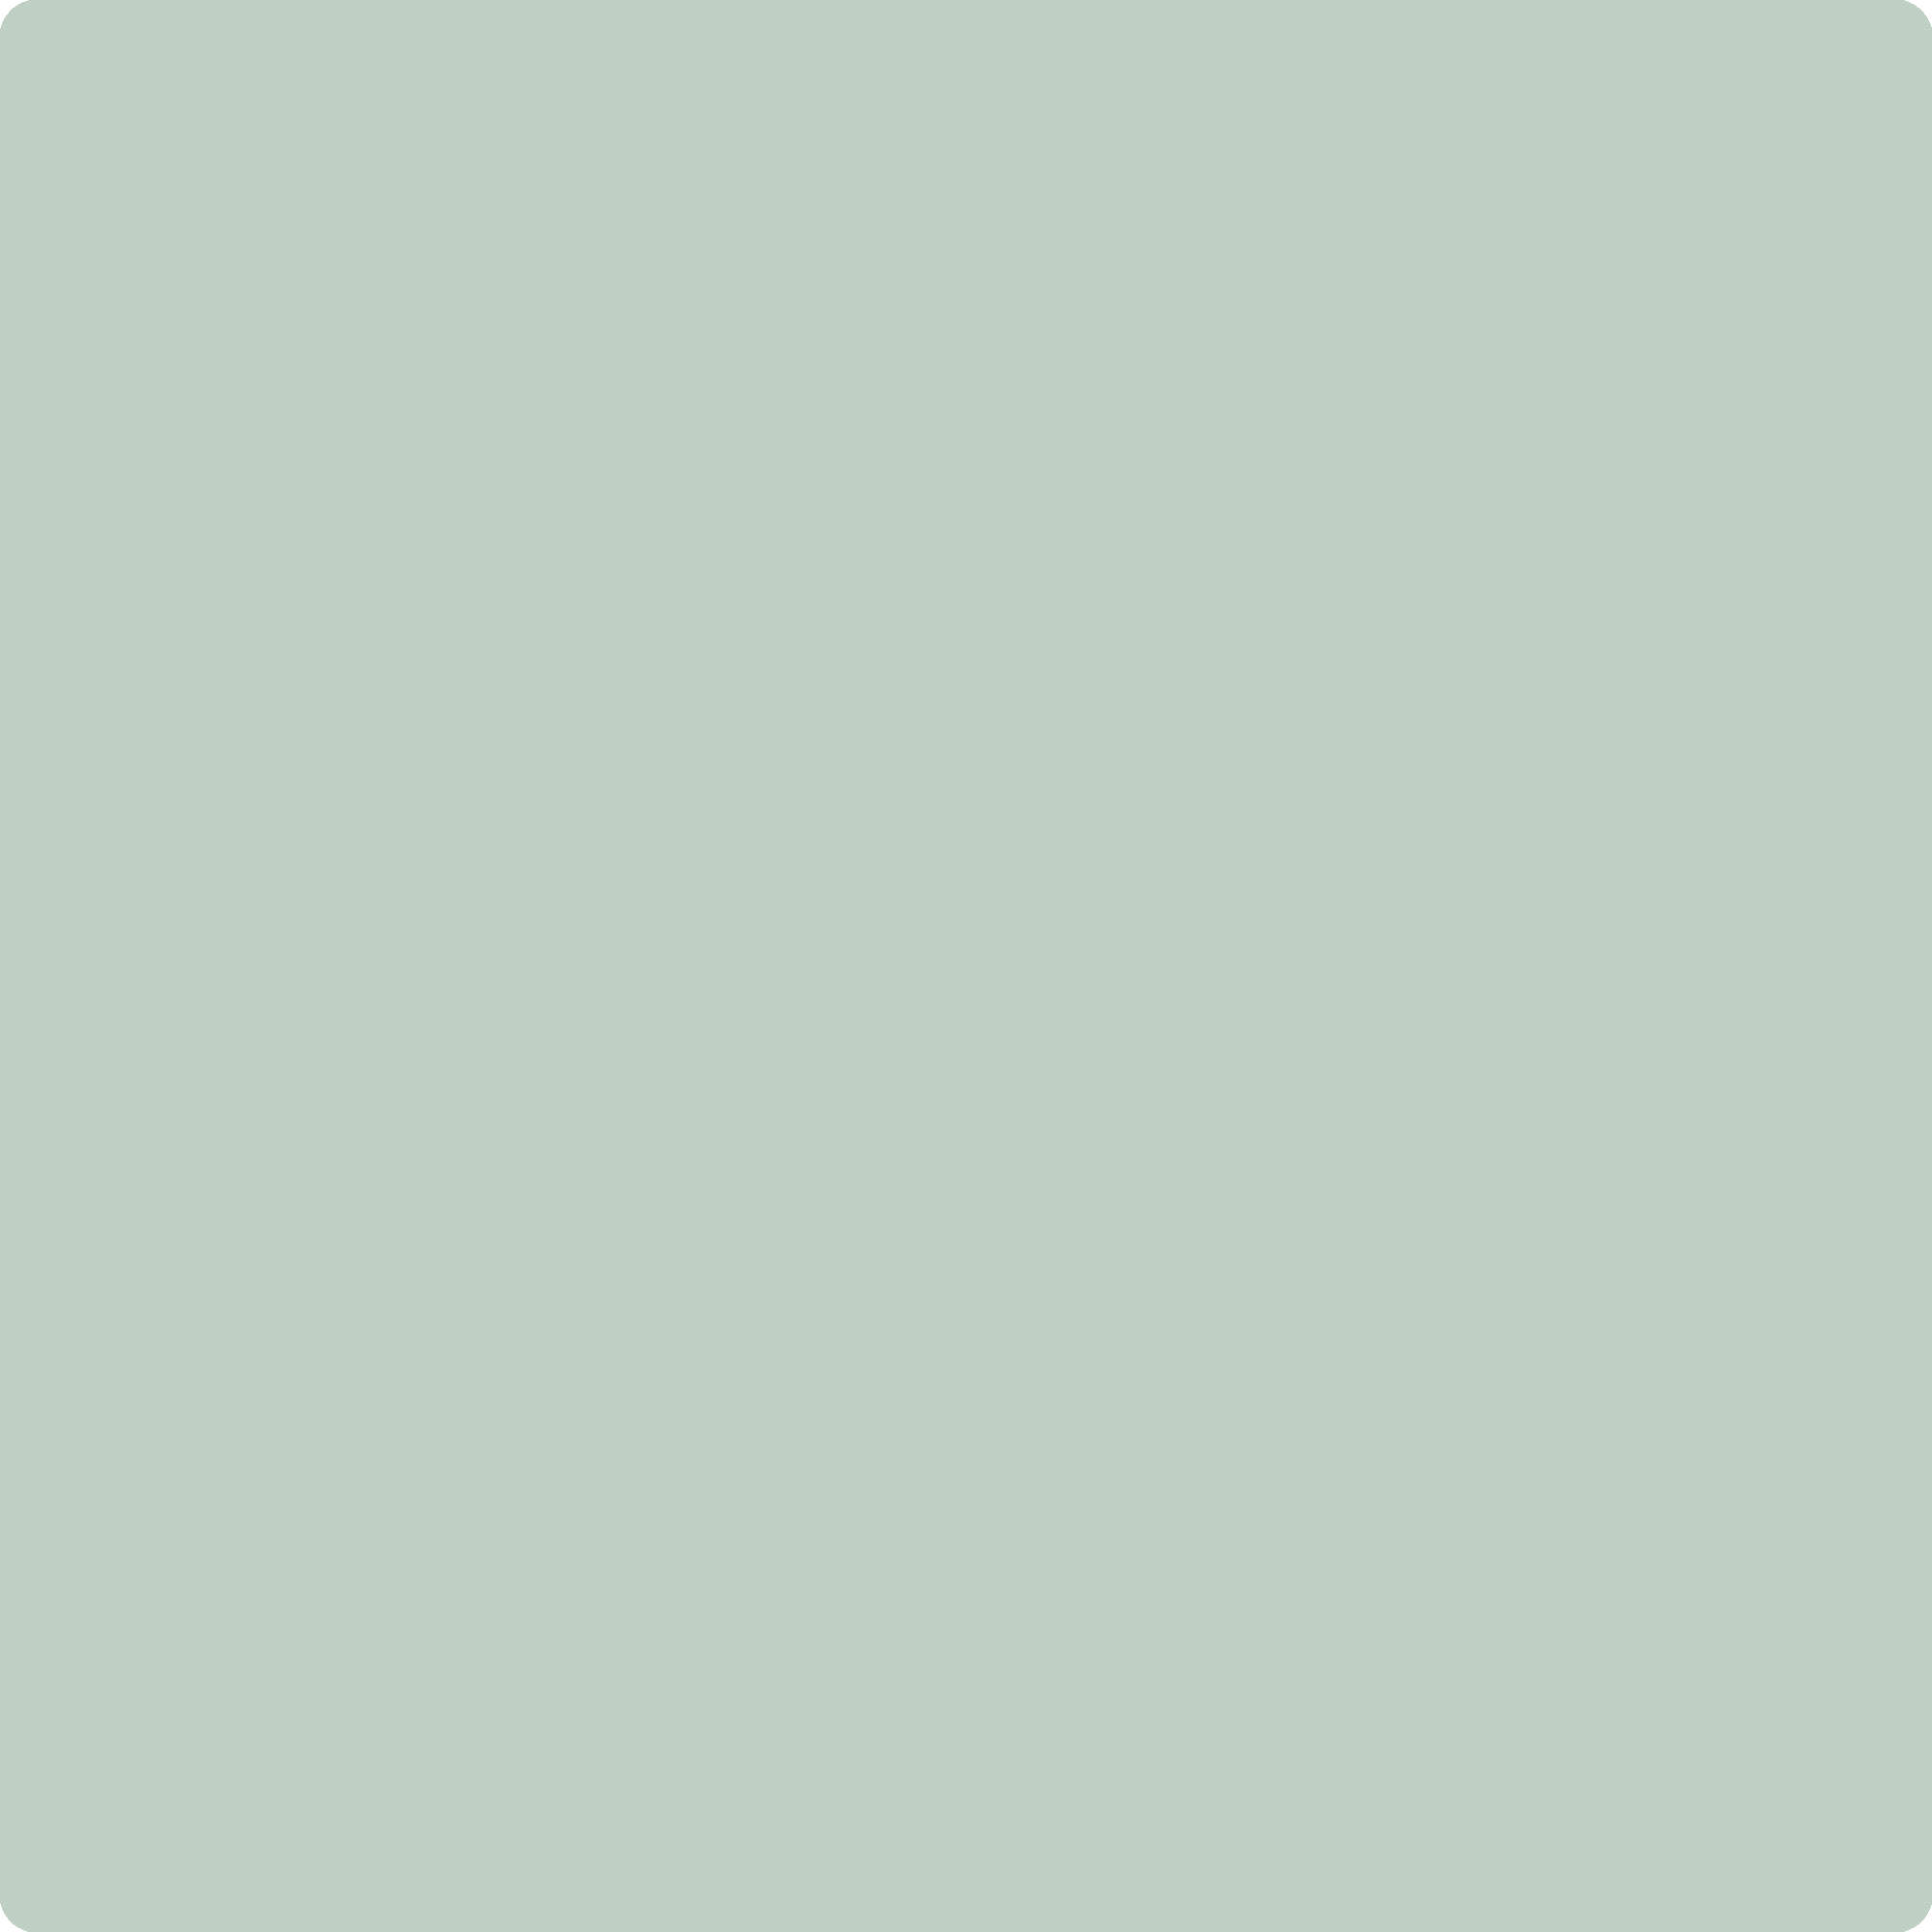 GE-140 Mint Chip by Benjamin Moore